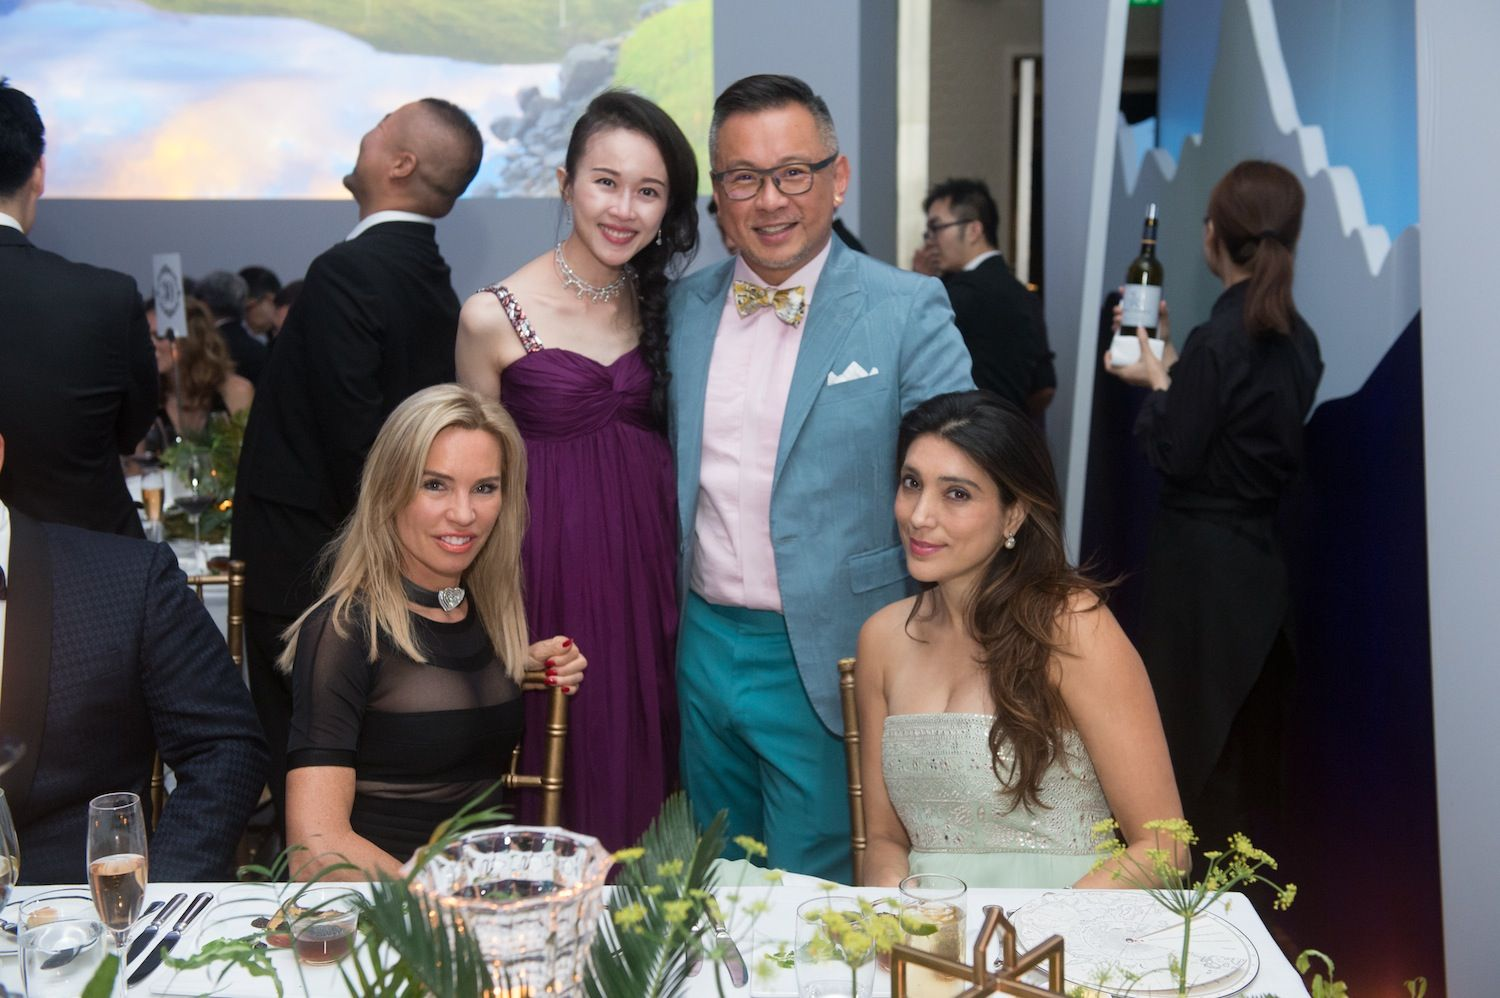 Annabelle Bond, Jacqueline Chow, Barney Cheng and Tania Mohan